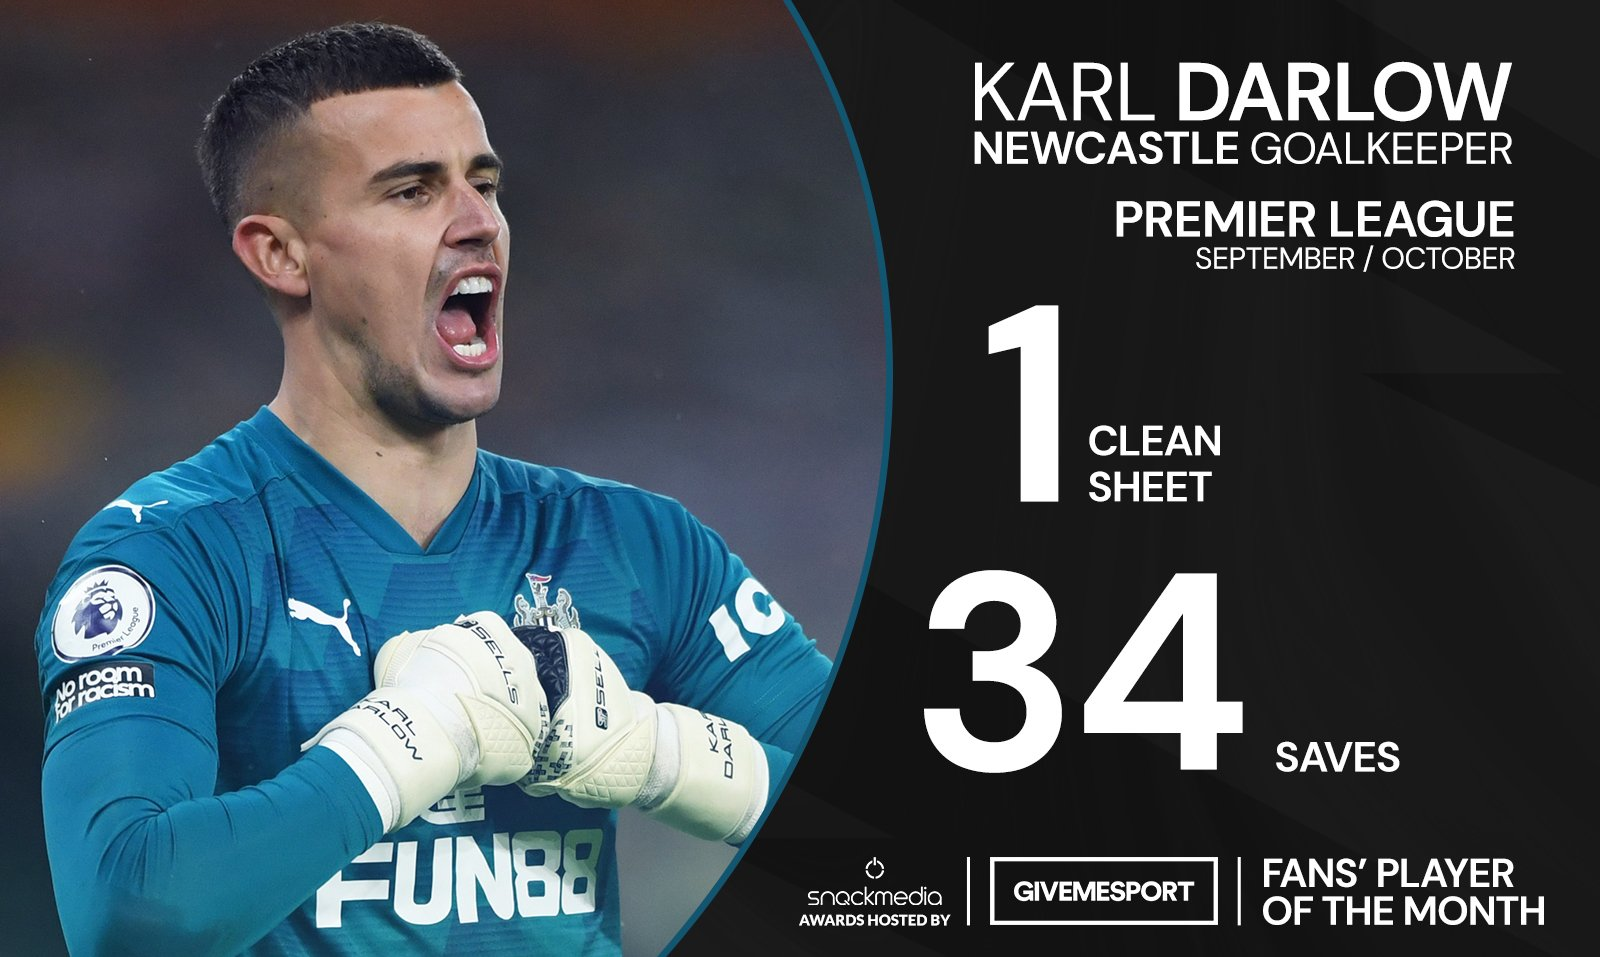 DARLOW KARL GMS FANS AWARD - Stunning form: Villa, Everton & Spurs stars rise to Premier League's best-in-class for 20/21